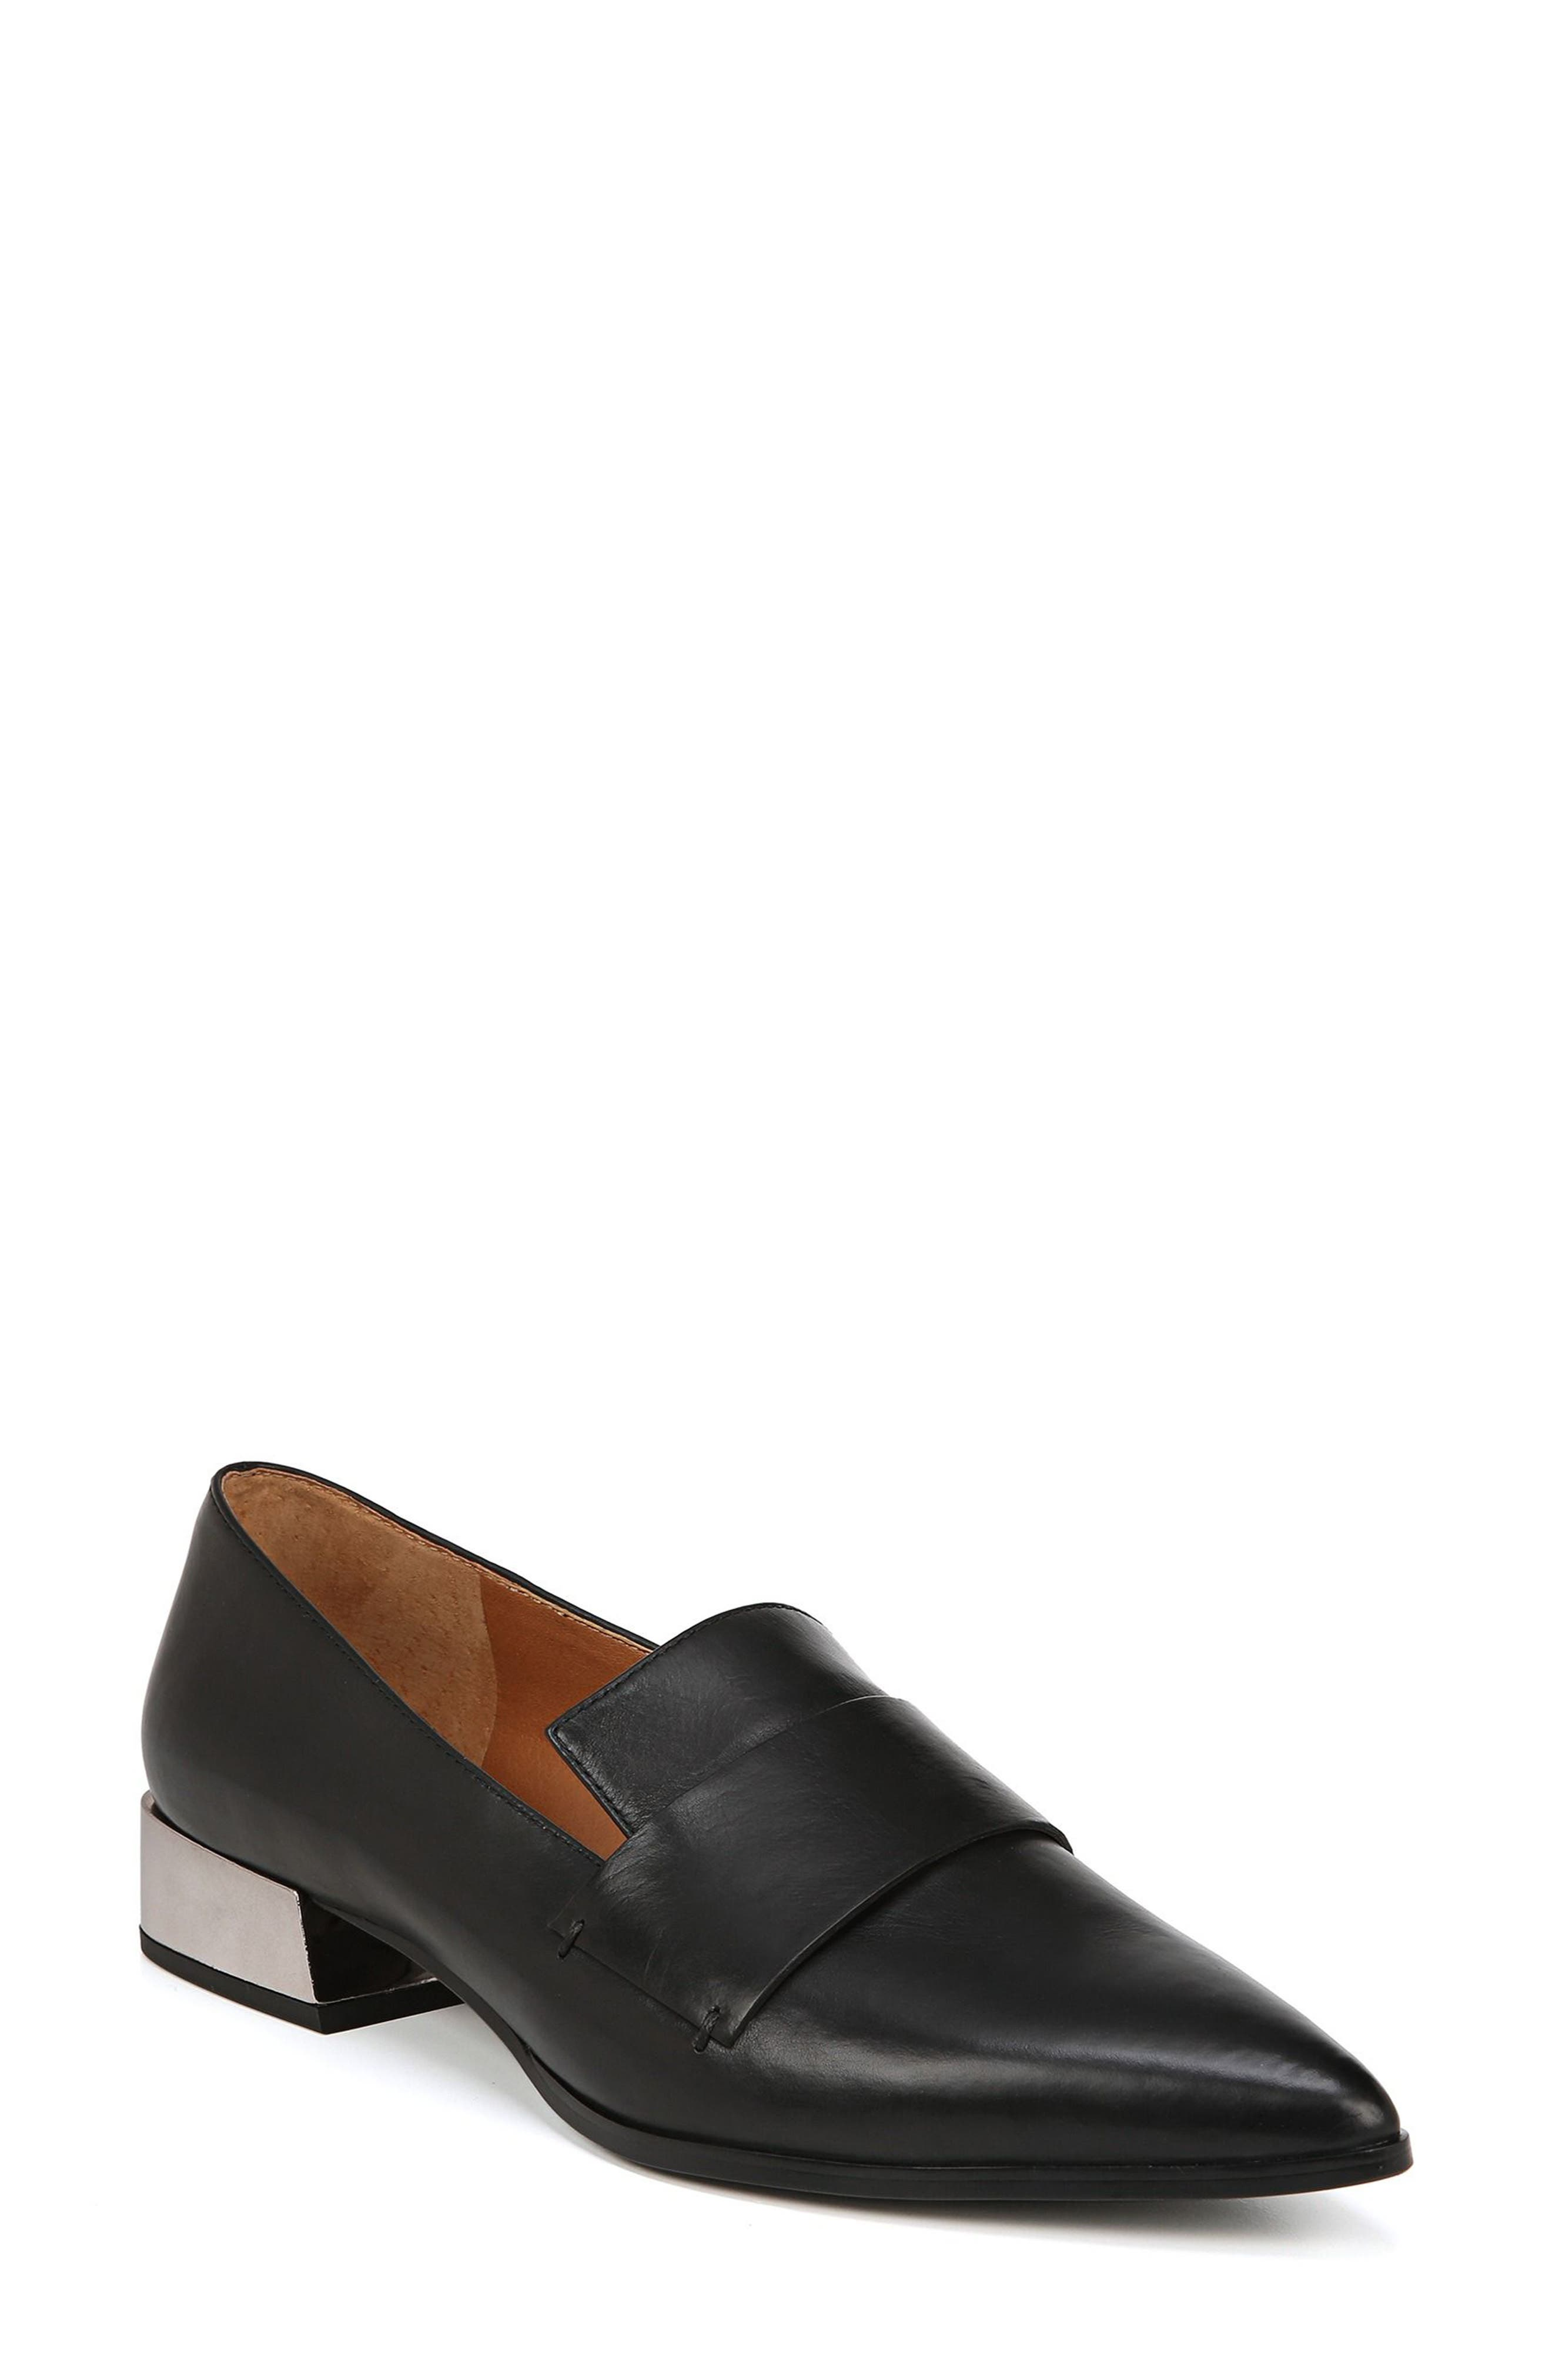 Nebby Loafer,                             Main thumbnail 1, color,                             BLACK LEATHER